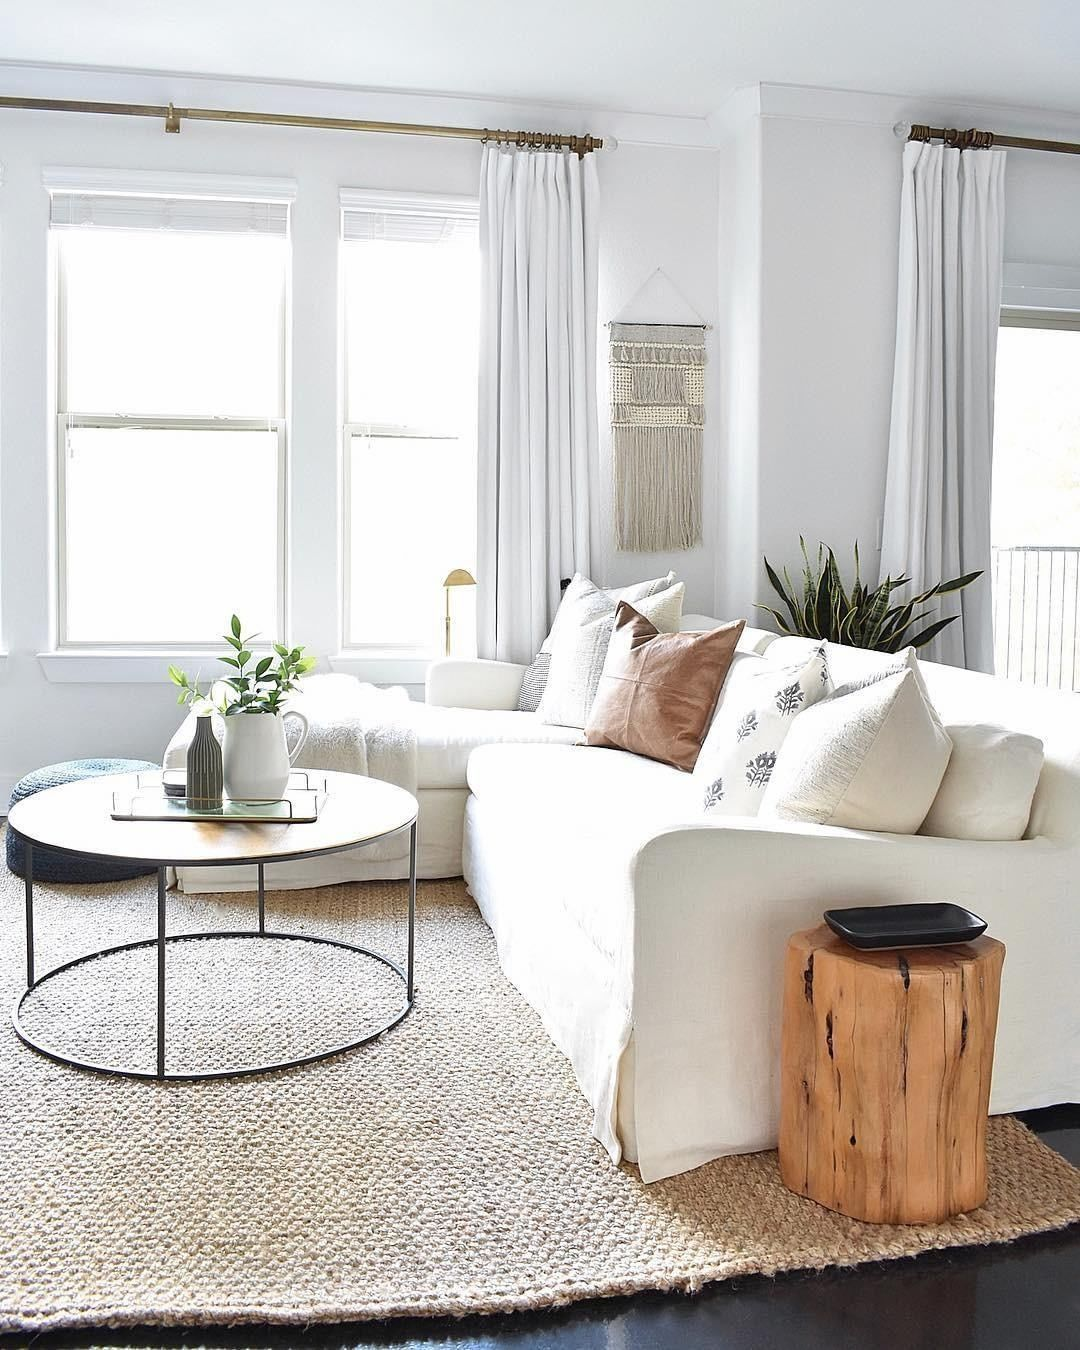 40 Most Beautiful Living Room Ideas 2019 Page 23 Of 42 Hairstylesofwomens Com Living Room Remodel Organic Living Room Curtains Living Room